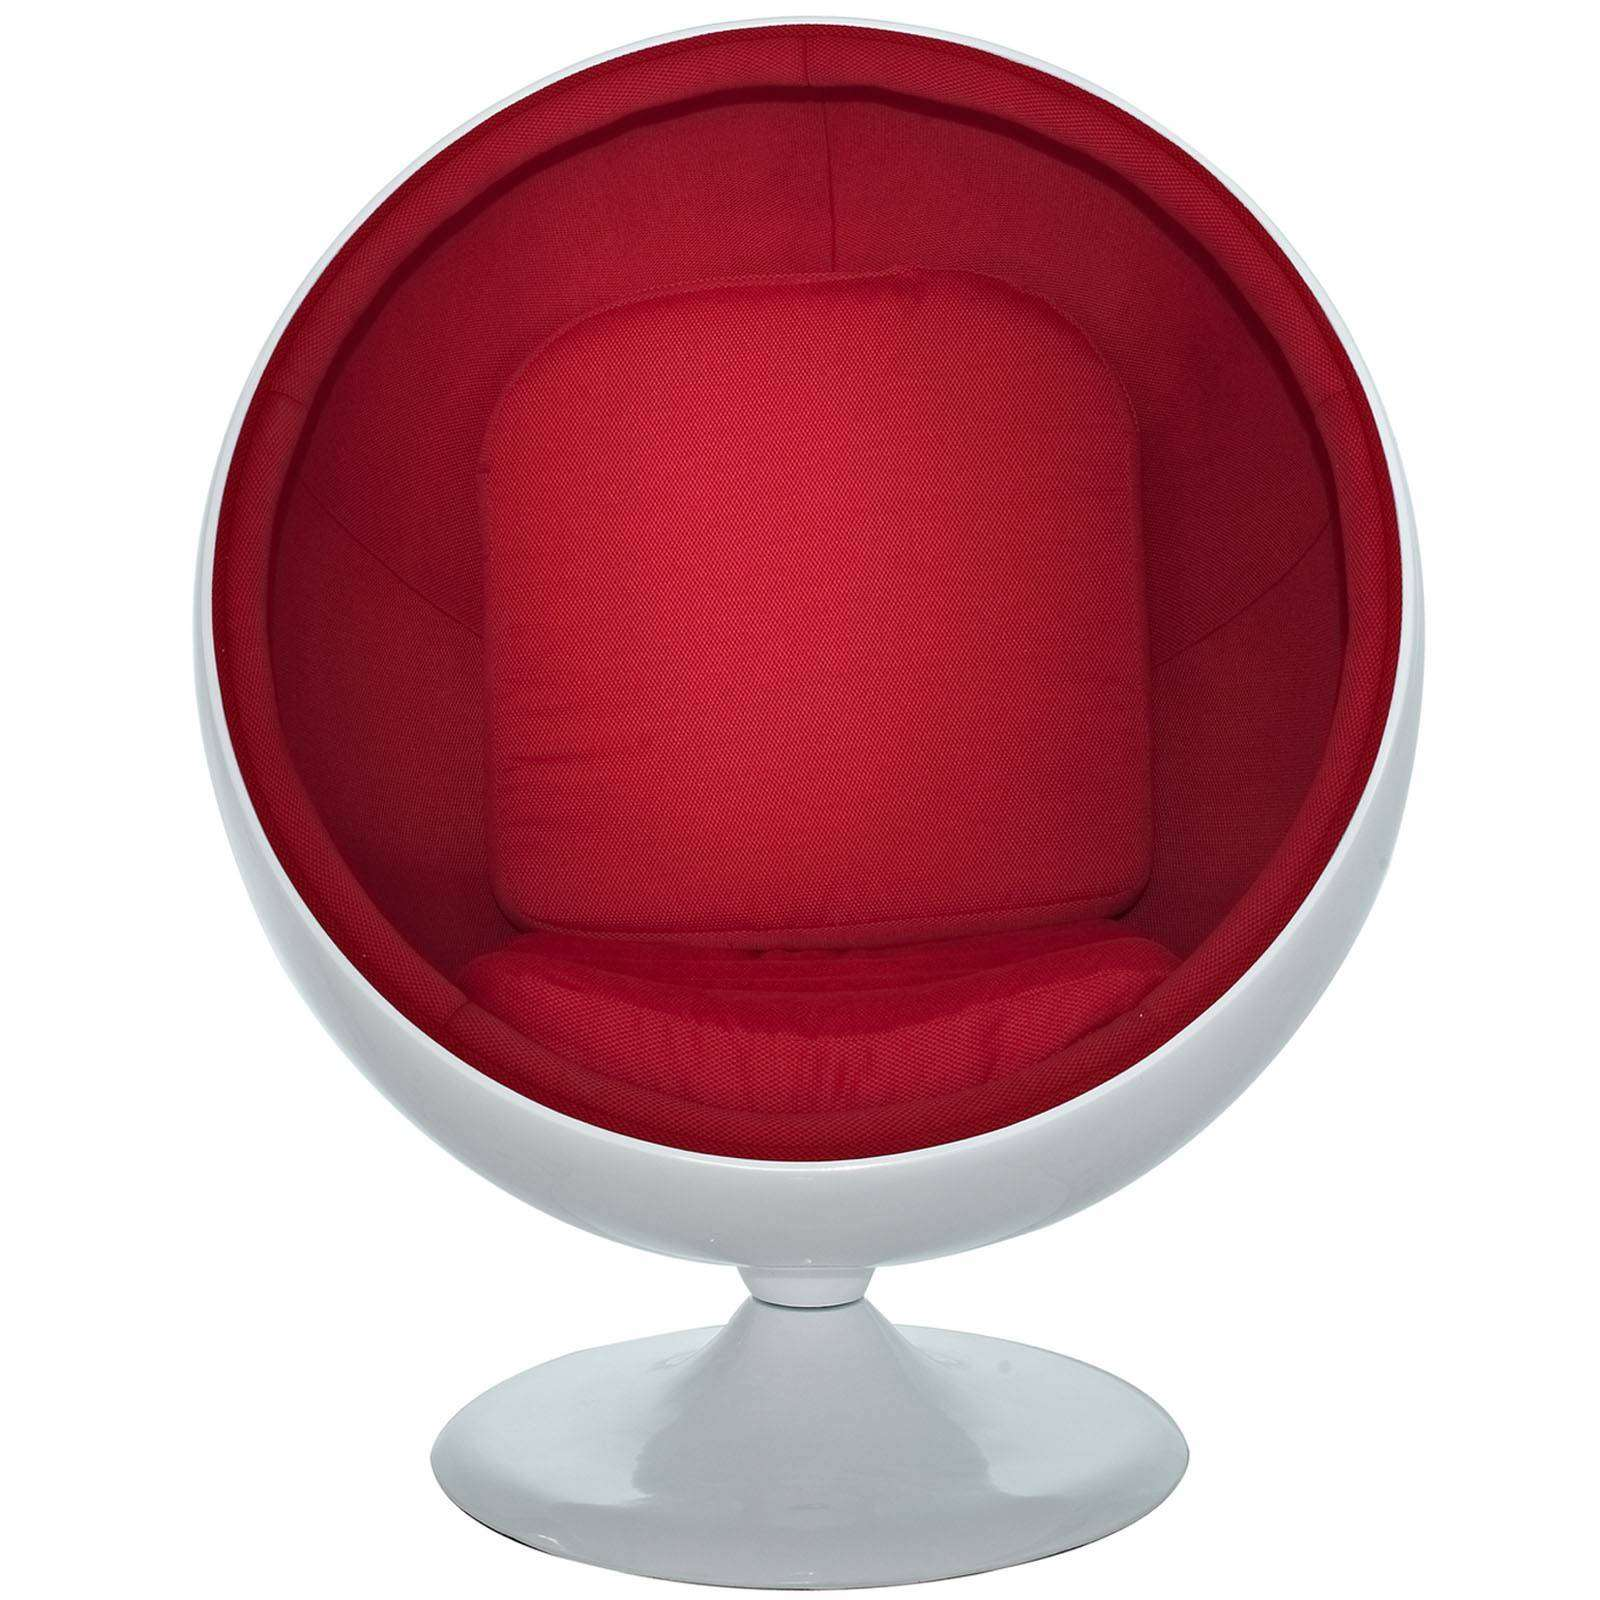 Eero aarnio style ball chair - Ball chair by eero aarnio ...